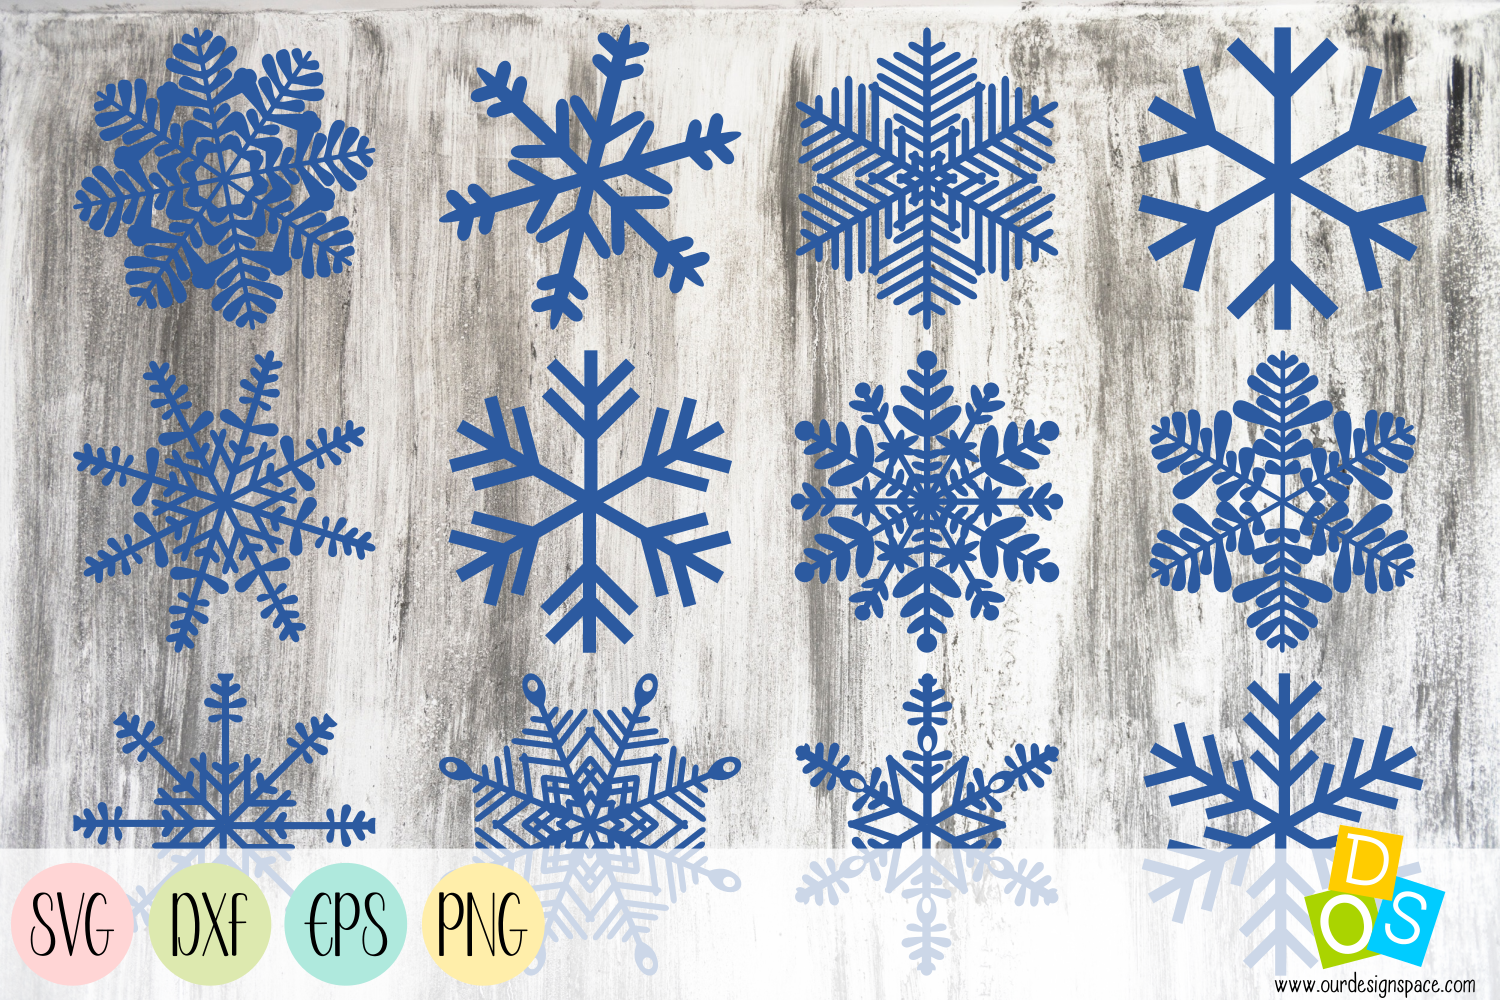 Snowflakes SVG, DXF, EPS and PNG files example image 1